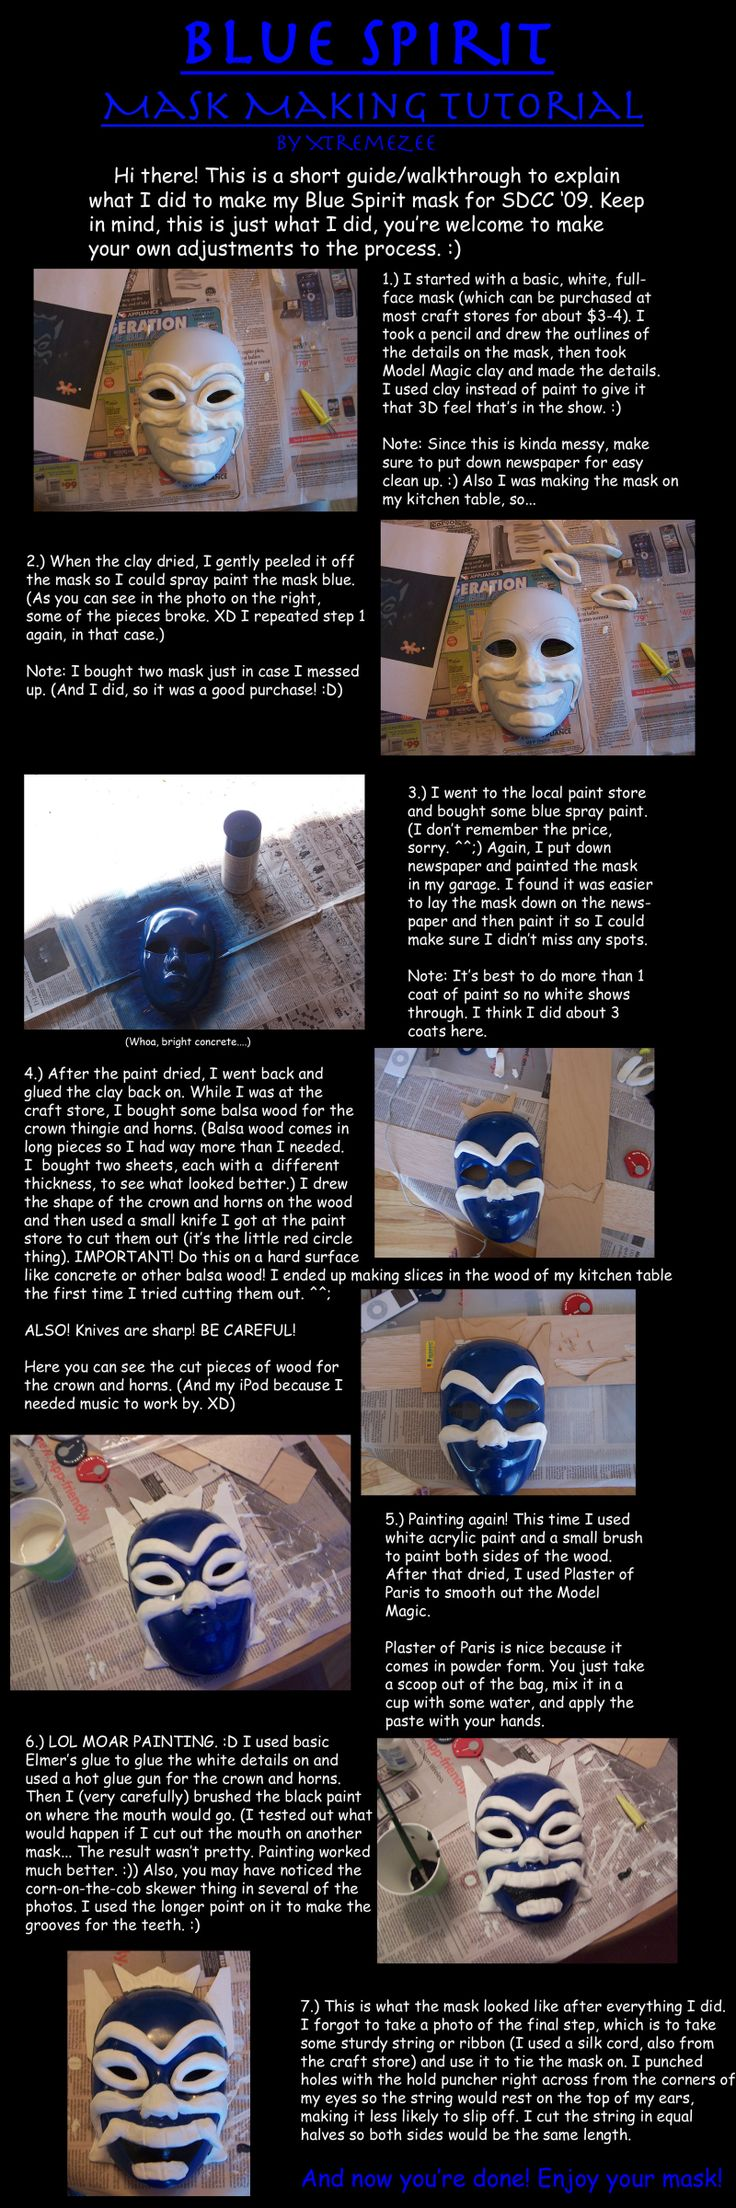 Mask tutorial for the Blue Spirit from Avatar The Last Airbender